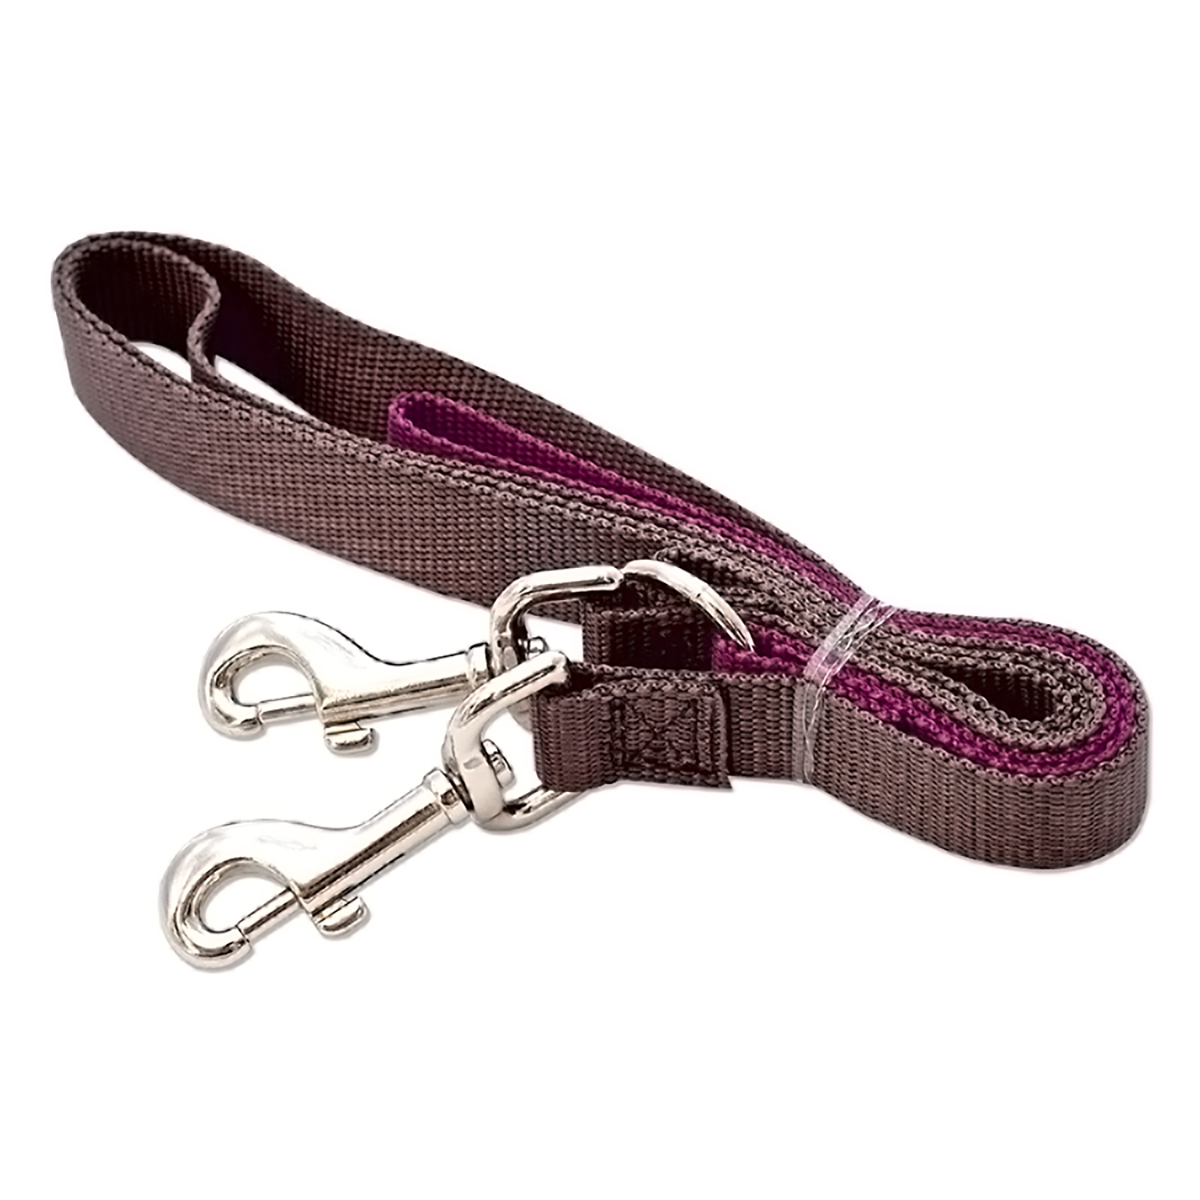 Positively Double-Connection Training Leash